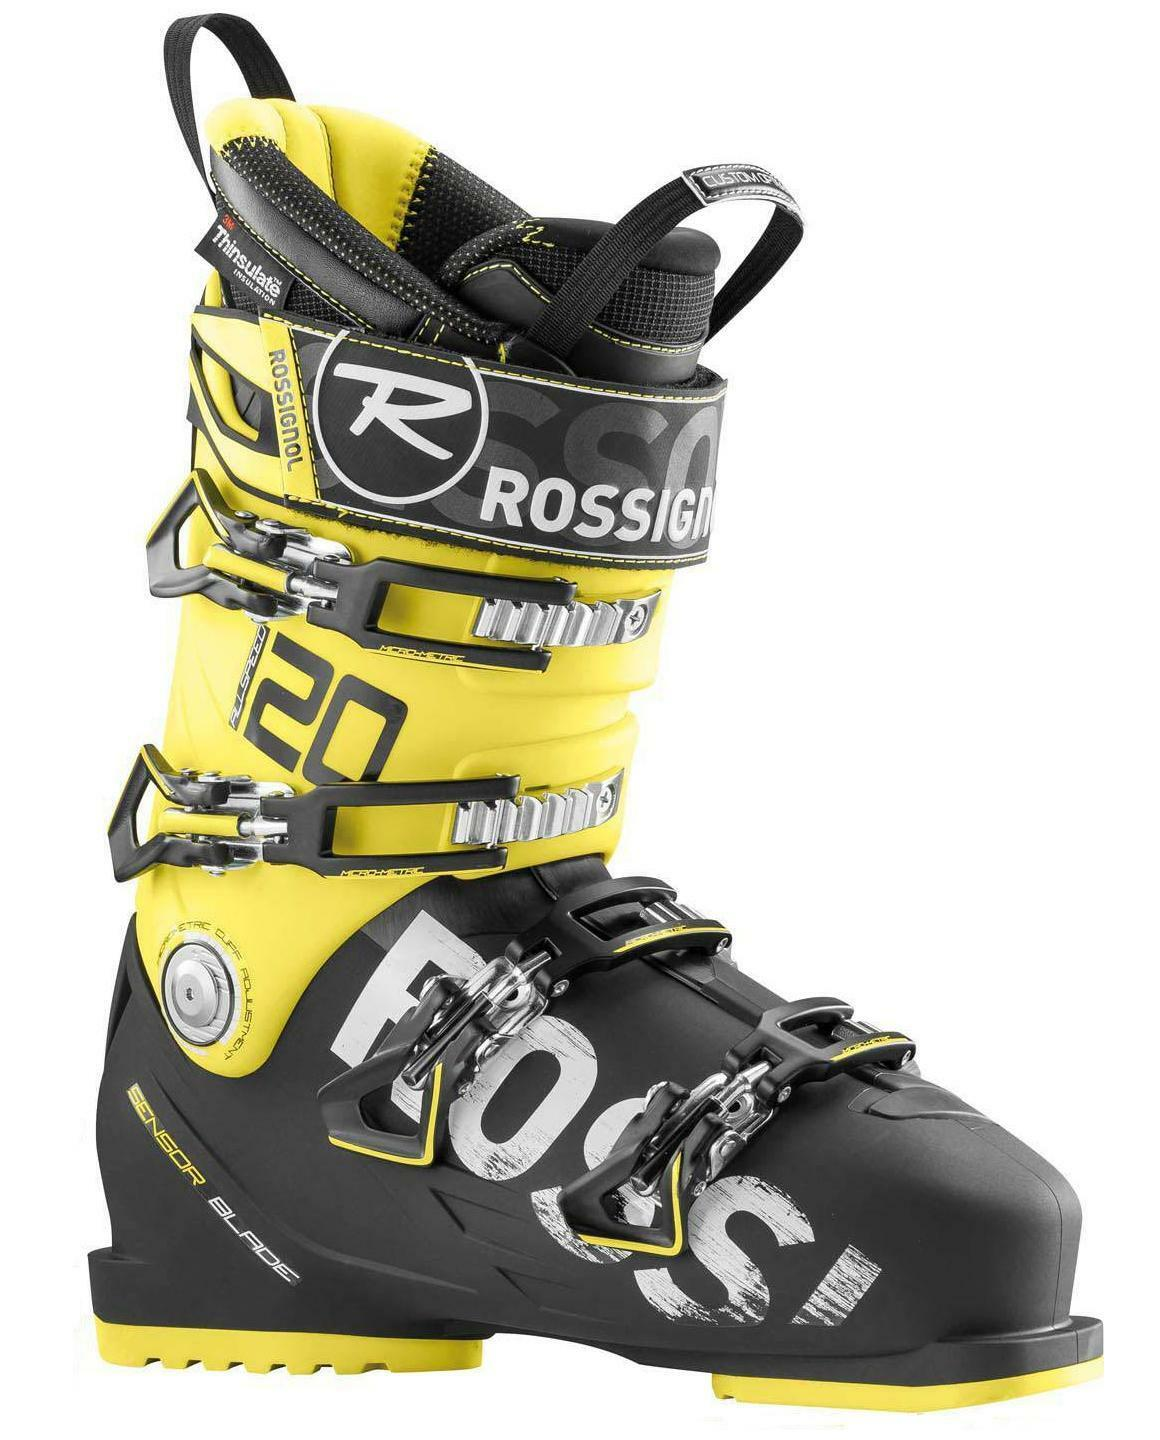 Rossignol AllSpeed 120 ski boots 28.5 (CLEARANCE price) NEW 2017